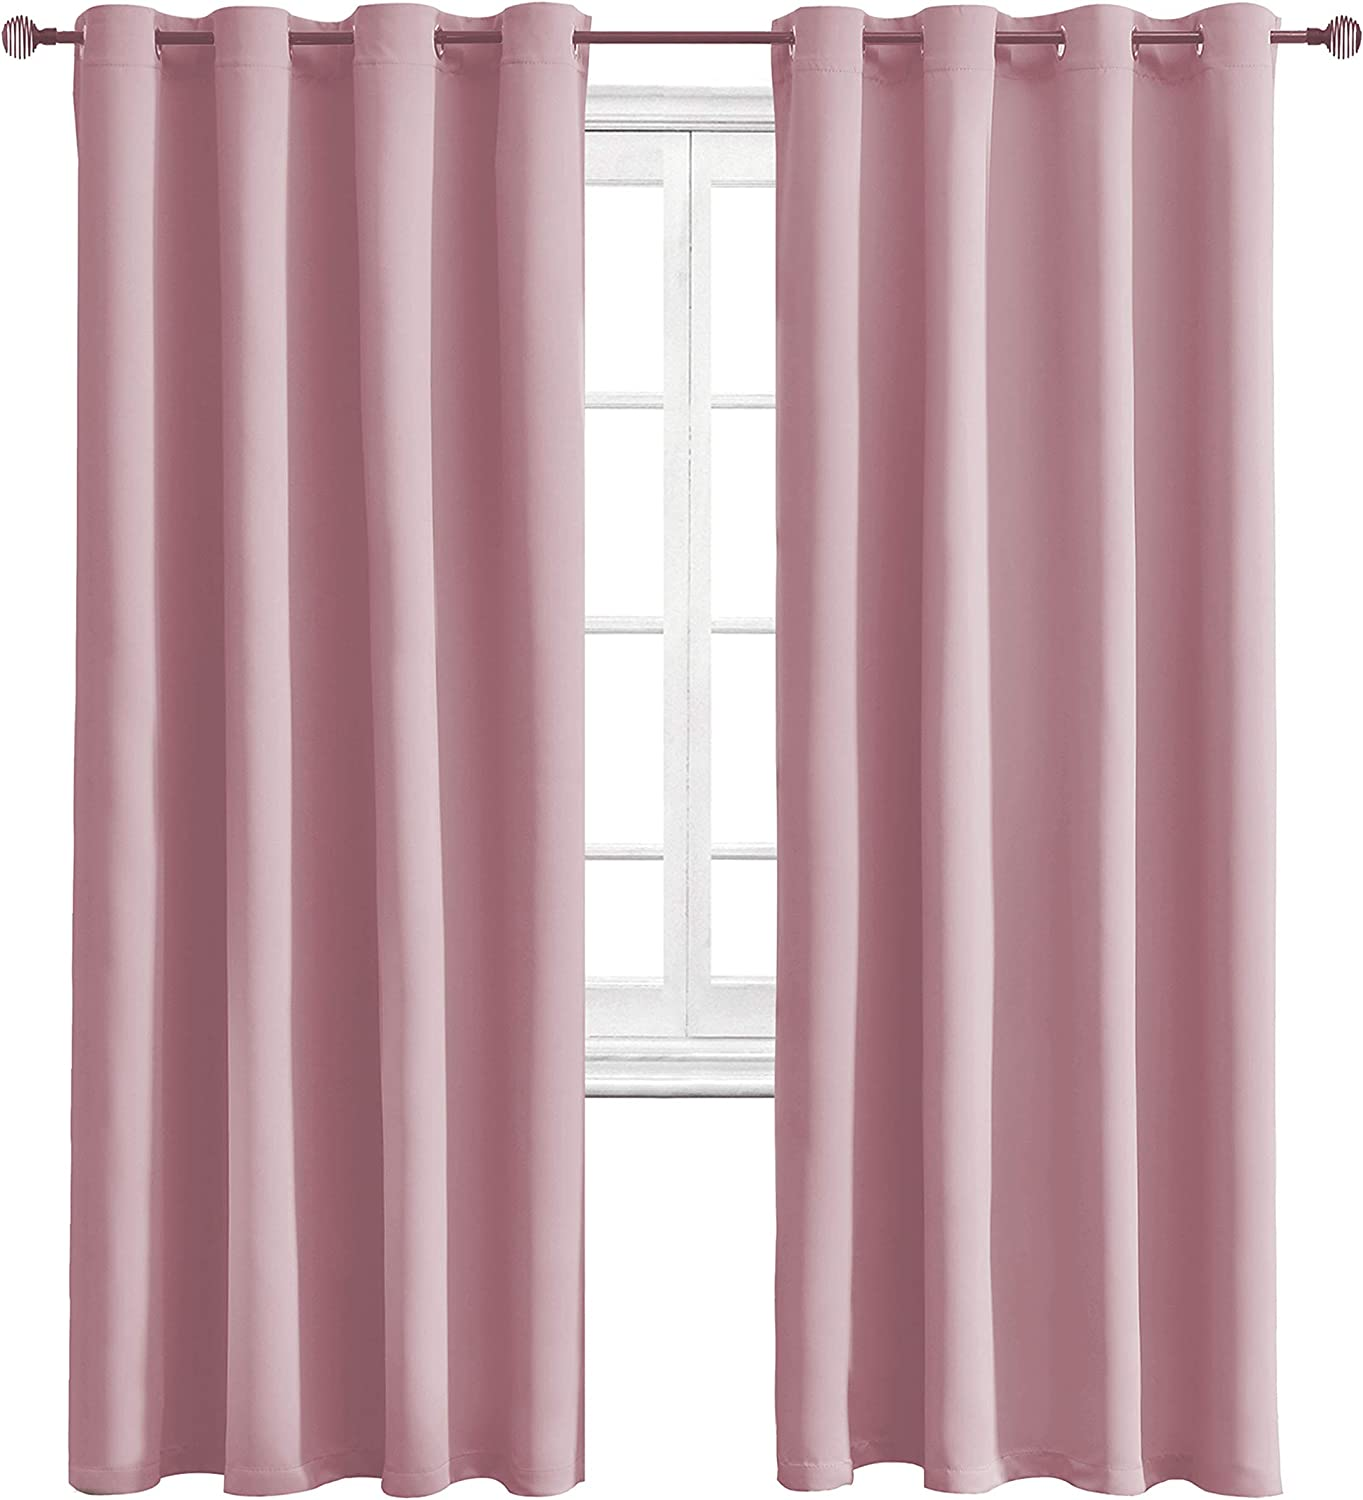 LITTLE BIRD Be super welcome Thermal Blackout Curtains safety -Winter Bedroom for Insula